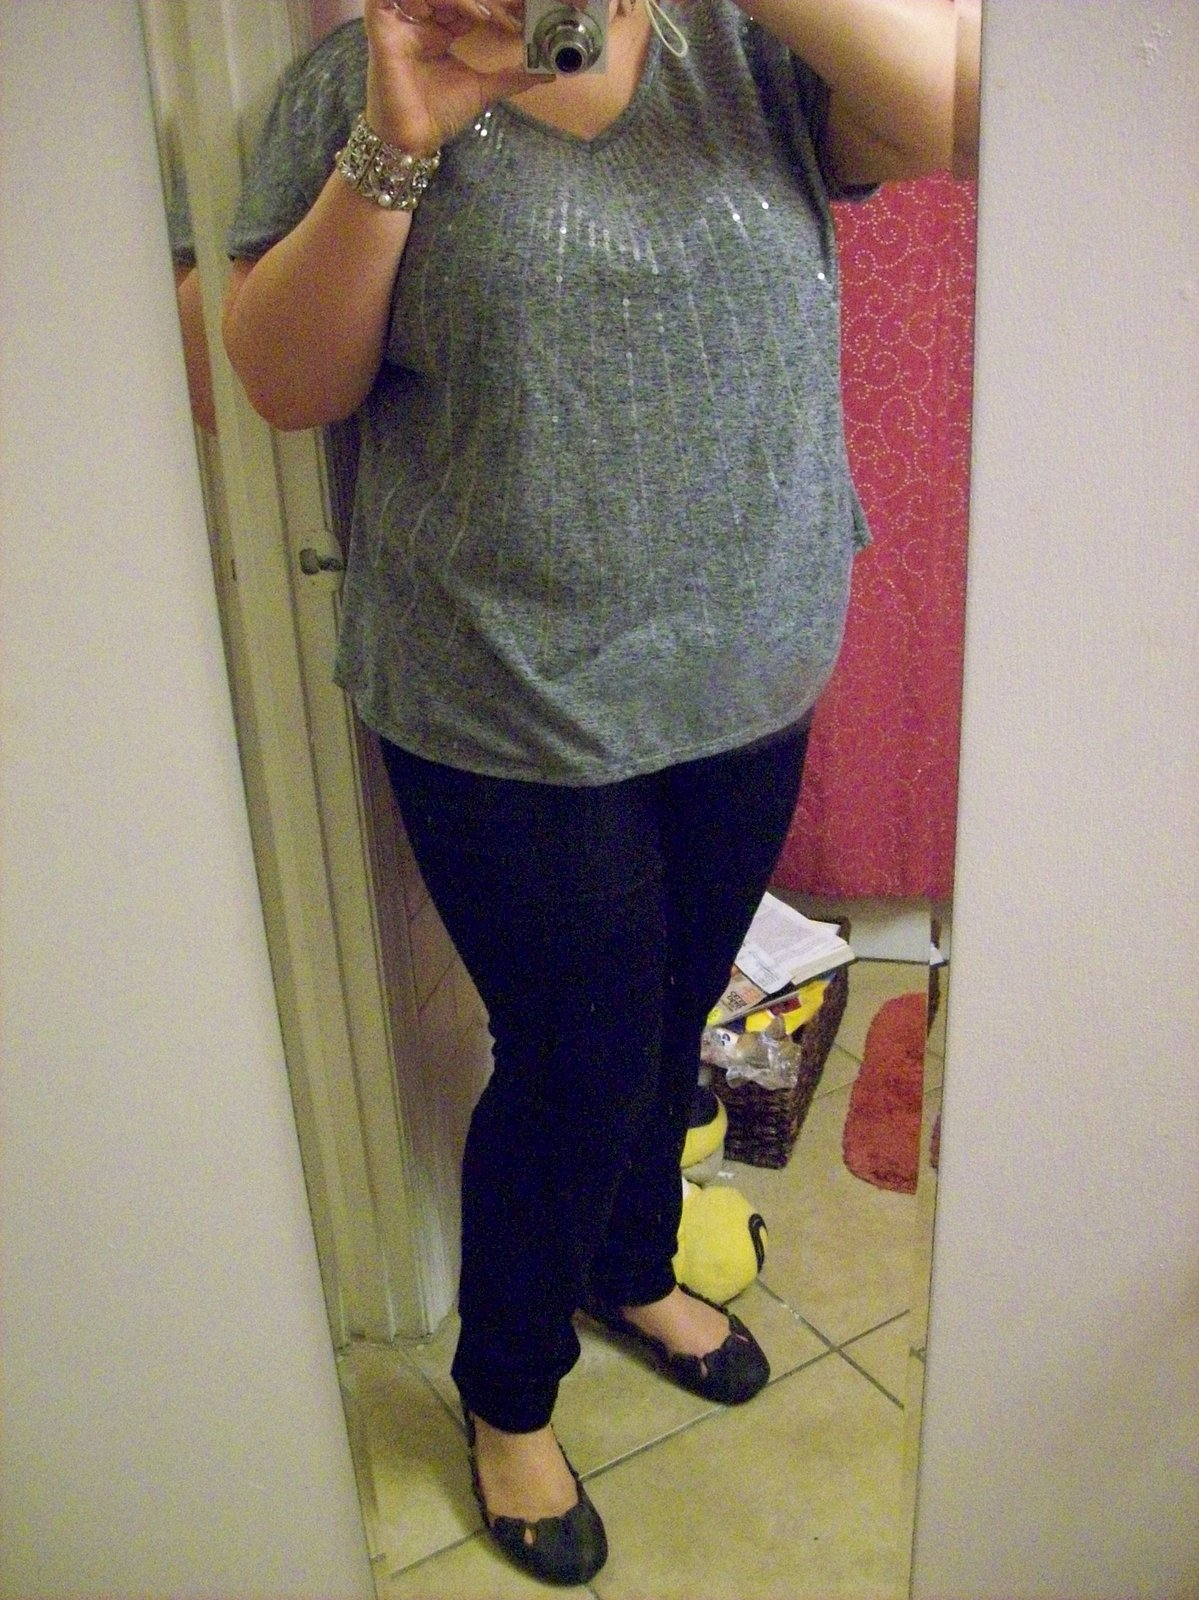 Chubby girl skinny jeans magnificent idea